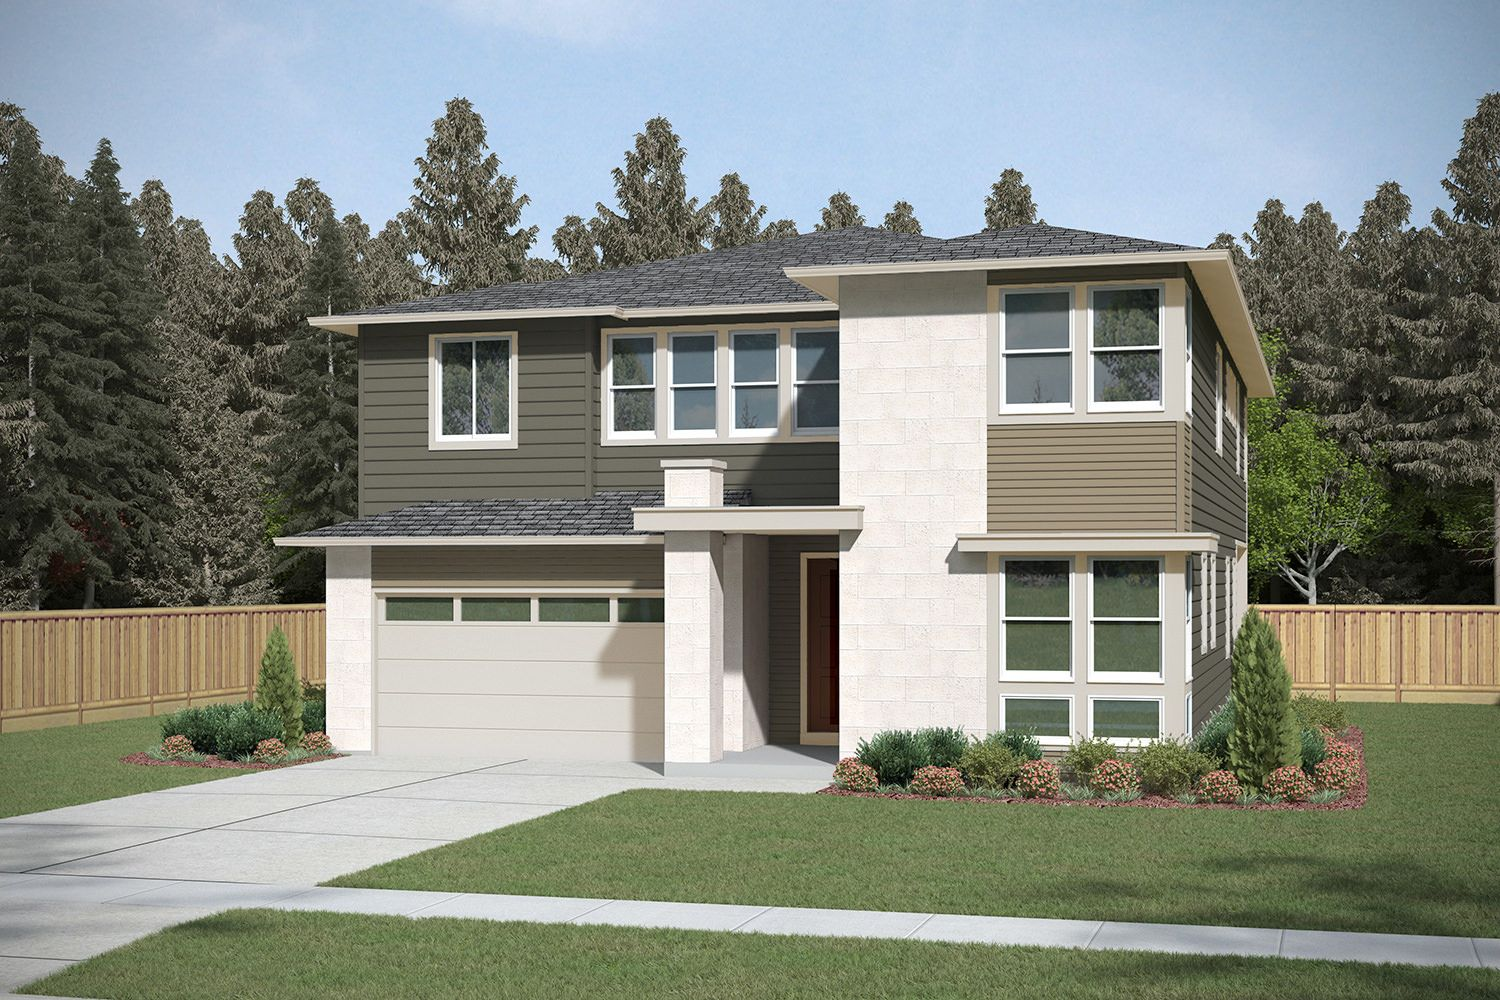 Single Family for Sale at Parkwood Terrace - Residence H-341 13599 Ne 205th St Woodinville, Washington 98072 United States